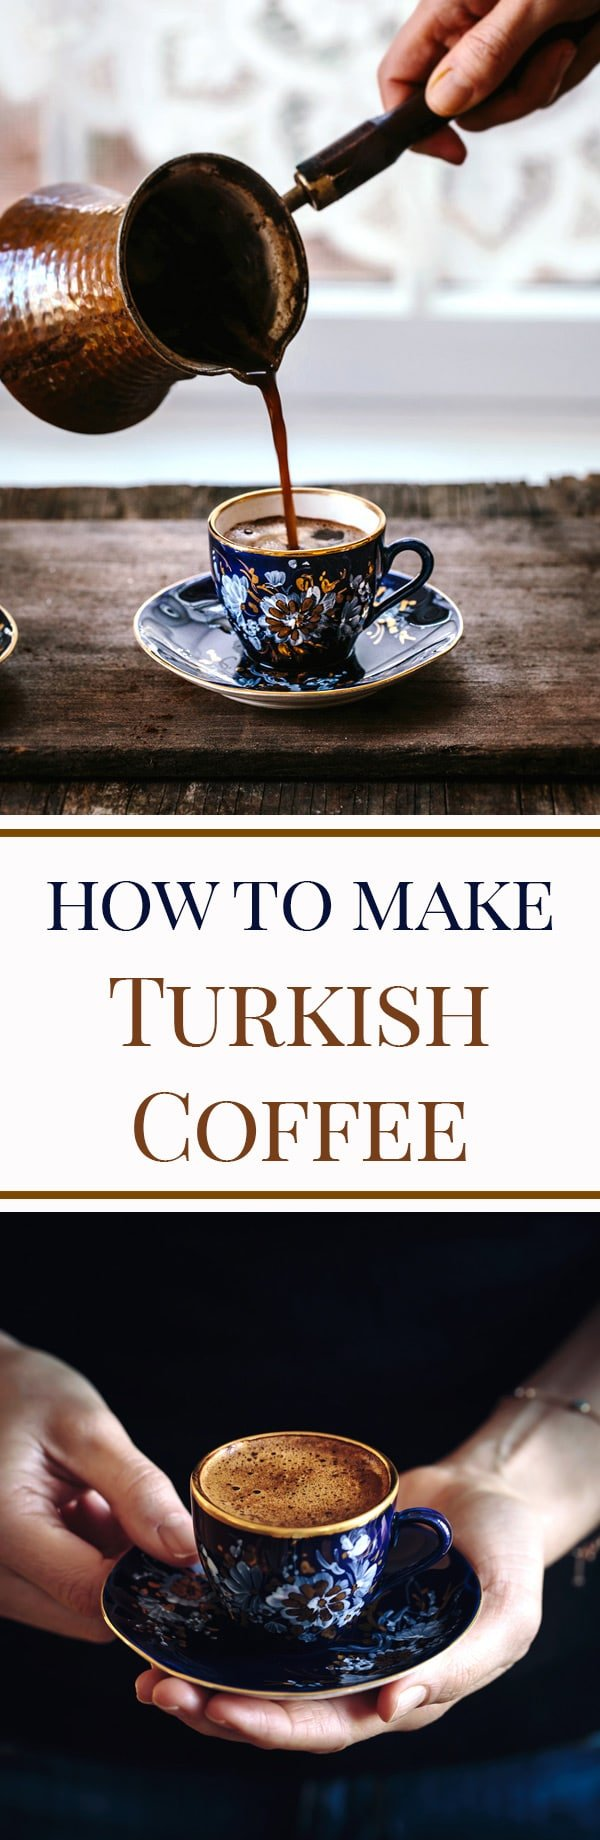 Coffee without milk i know how you feel inside i ve been there - Learn How To Make And Serve Turkish Coffee